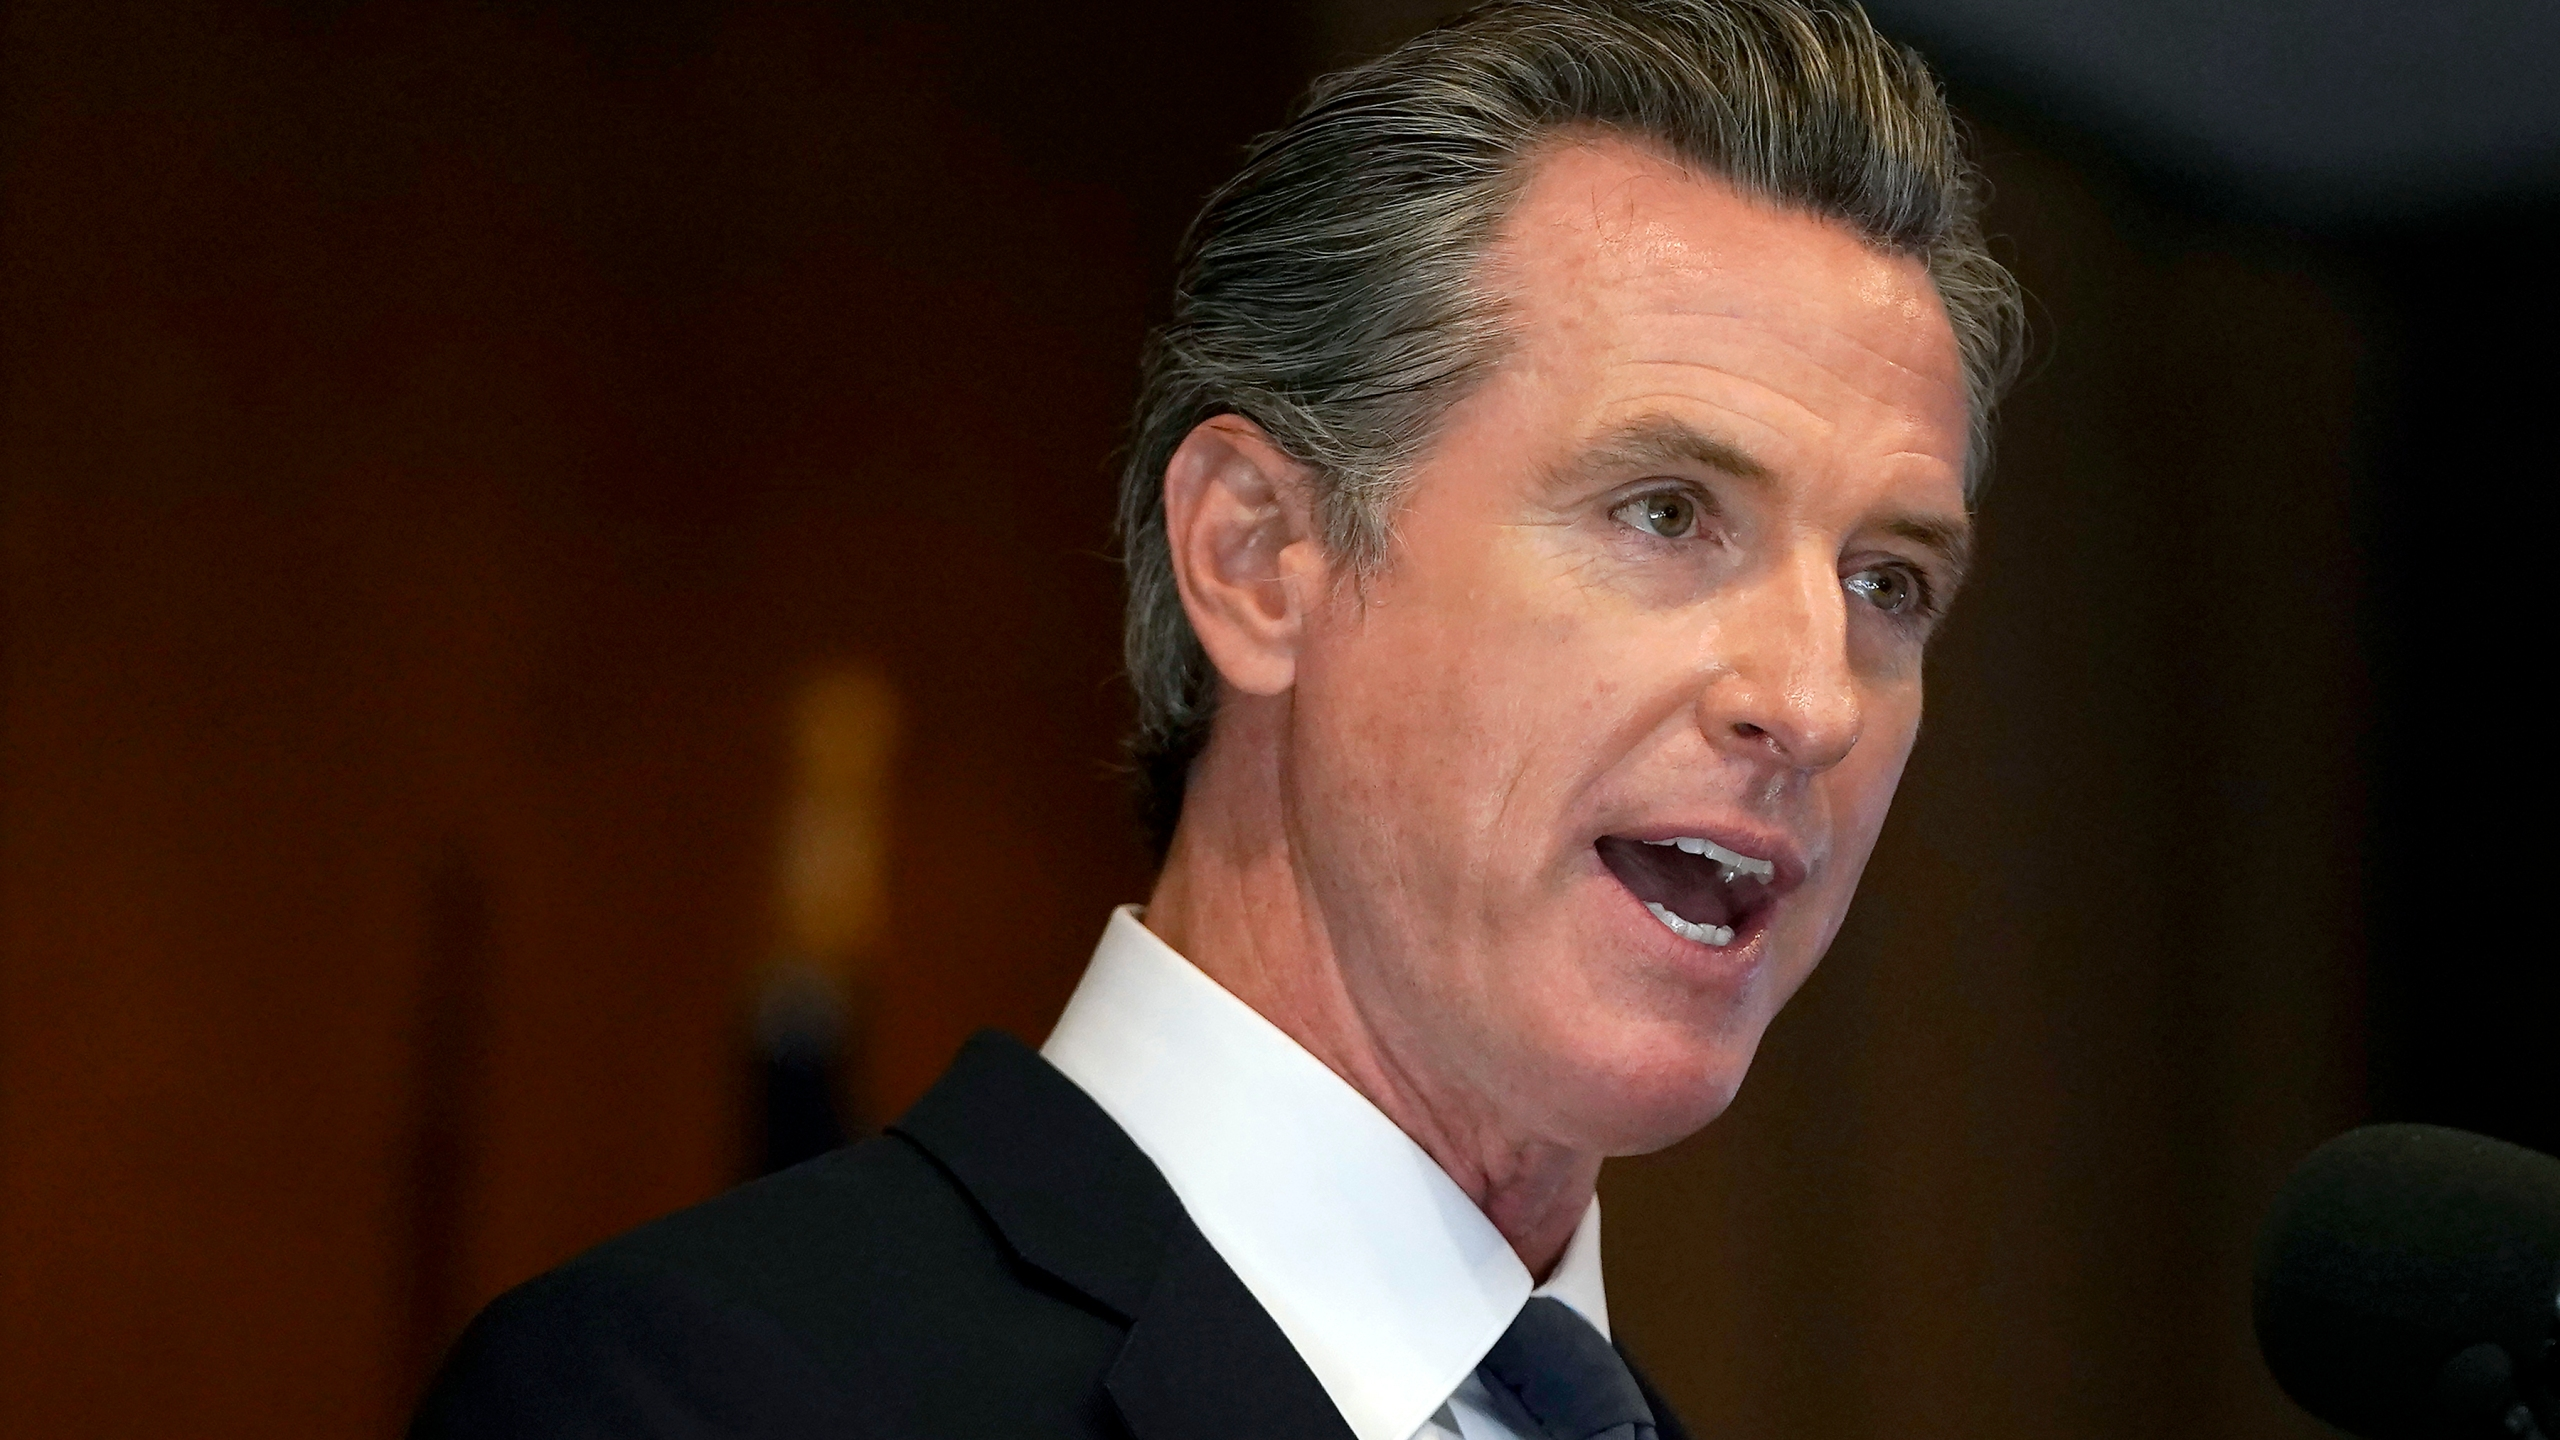 """In this Sept. 14, 2021, file photo, California Gov. Gavin Newsom speaks in San Francisco. On Friday, Sept. 24, 2021, Newsom signed a law replacing the word """"alien"""" in state law when referring to noncitizens. Newsom said the term is outdated and derogatory. The word will be replaced with words like """"noncitizen"""" and """"immigrant."""" U.S. President Joe Biden ordered federal immigration agencies to stop using the word """"alien"""" earlier this year. (AP Photo/Jeff Chiu)"""